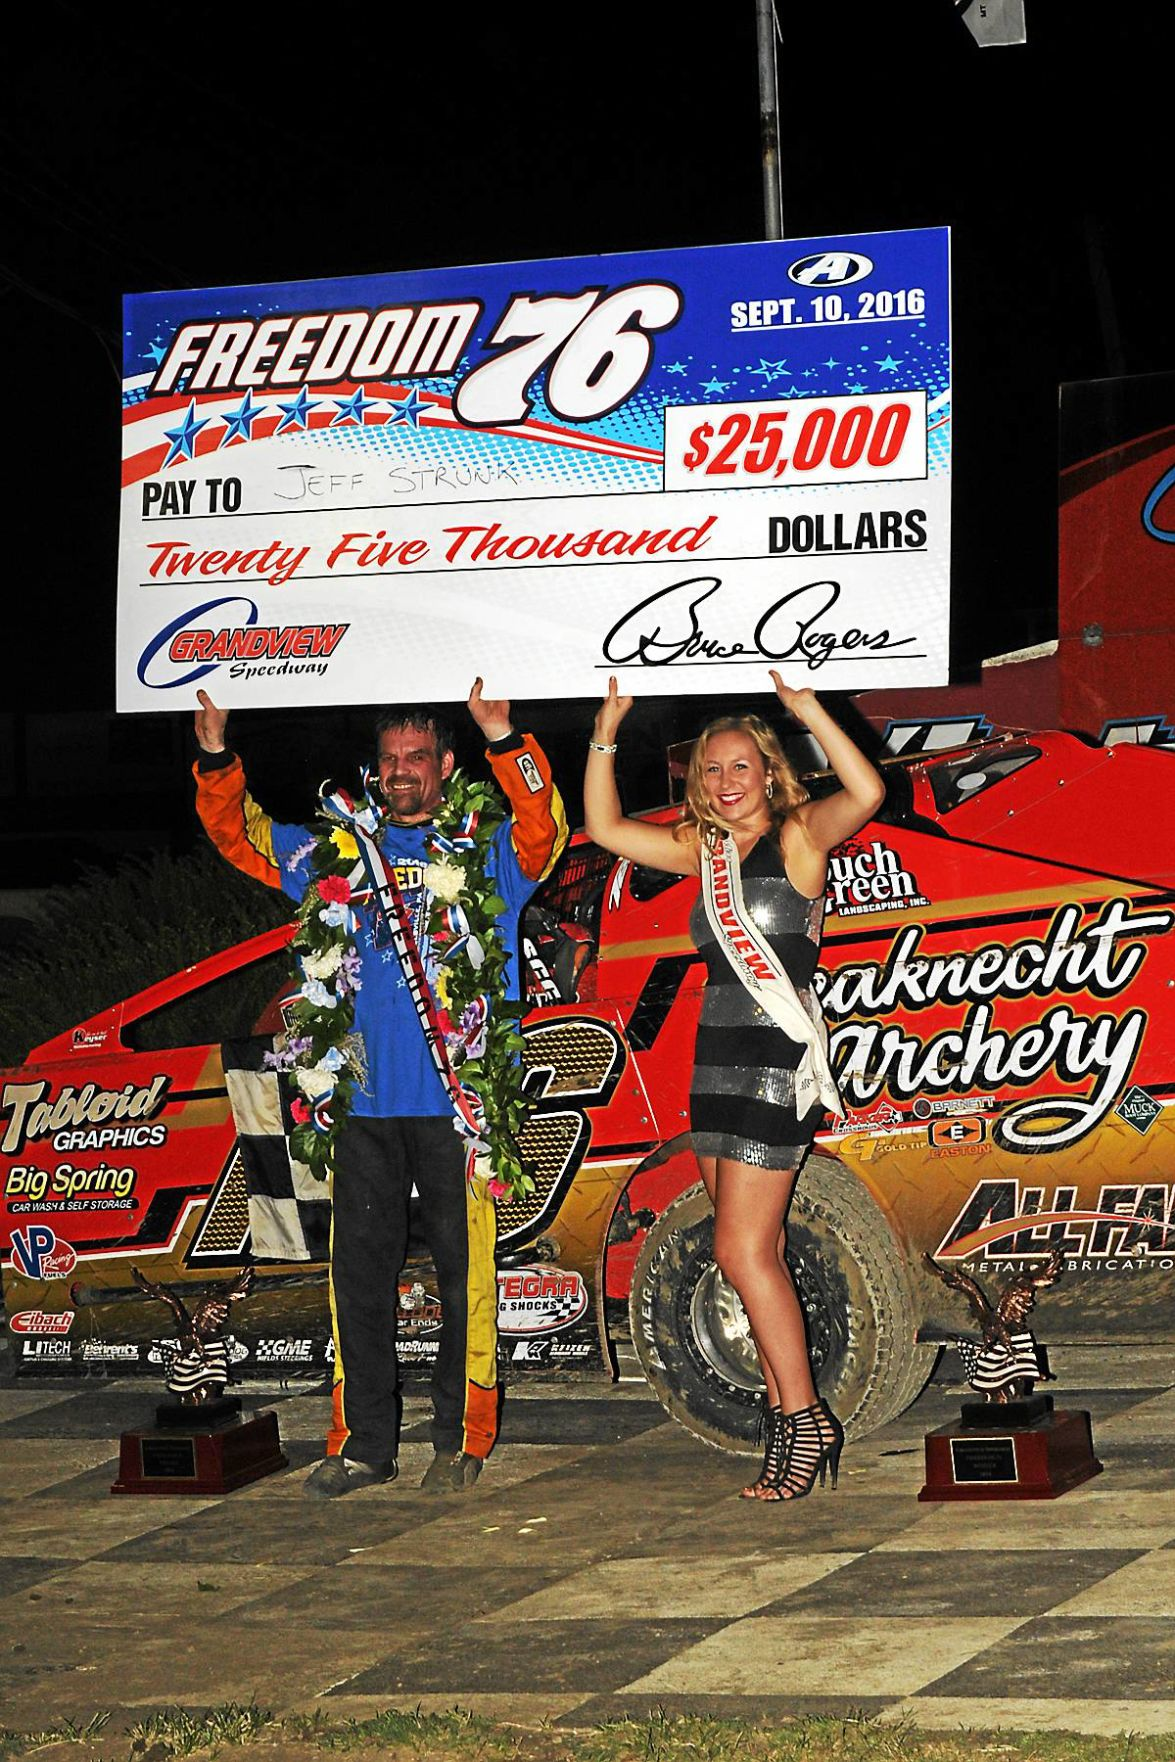 Strunk steals show for sixth Freedom 76 victory at Grandview